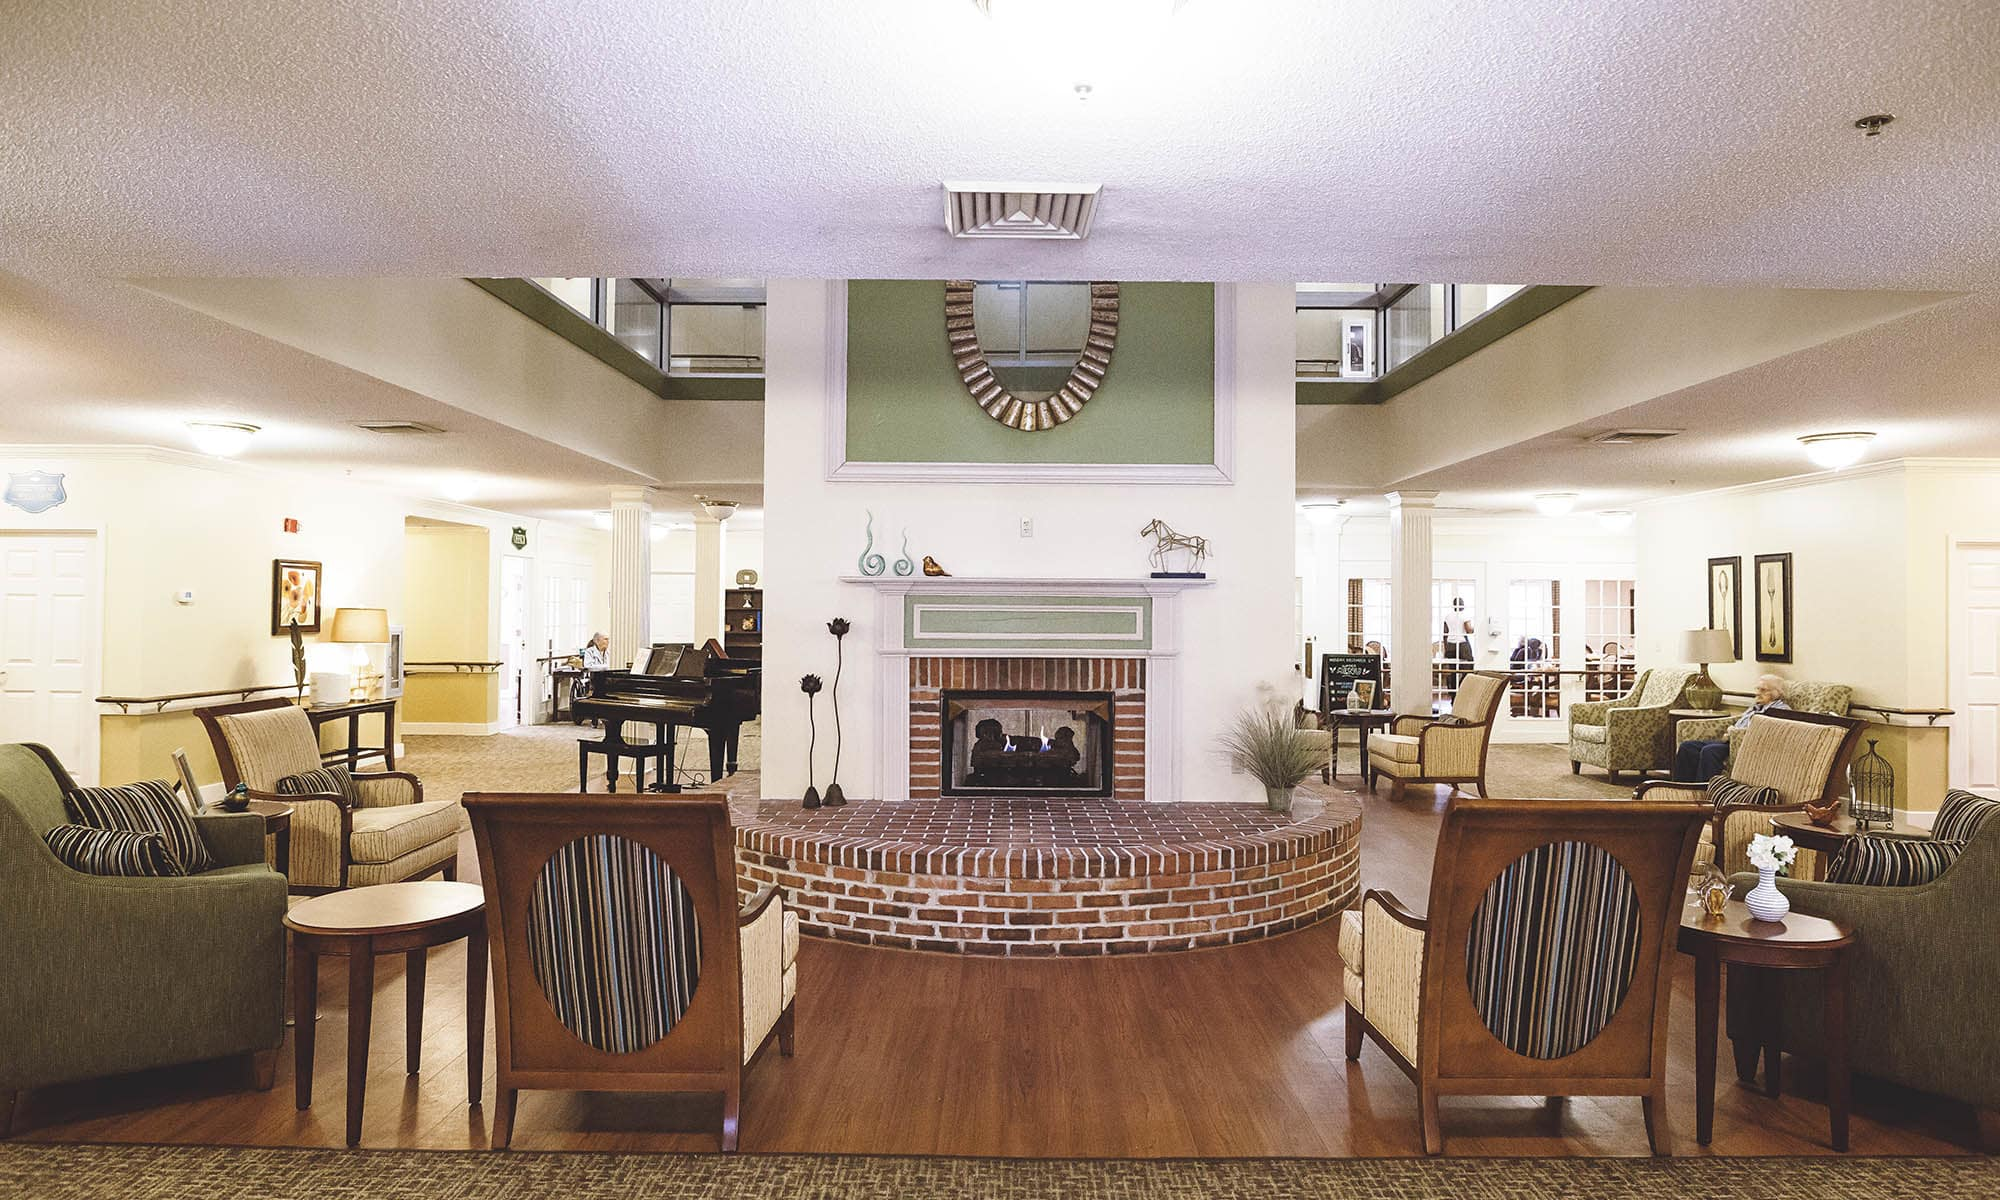 Senior living in Tallahassee, FL